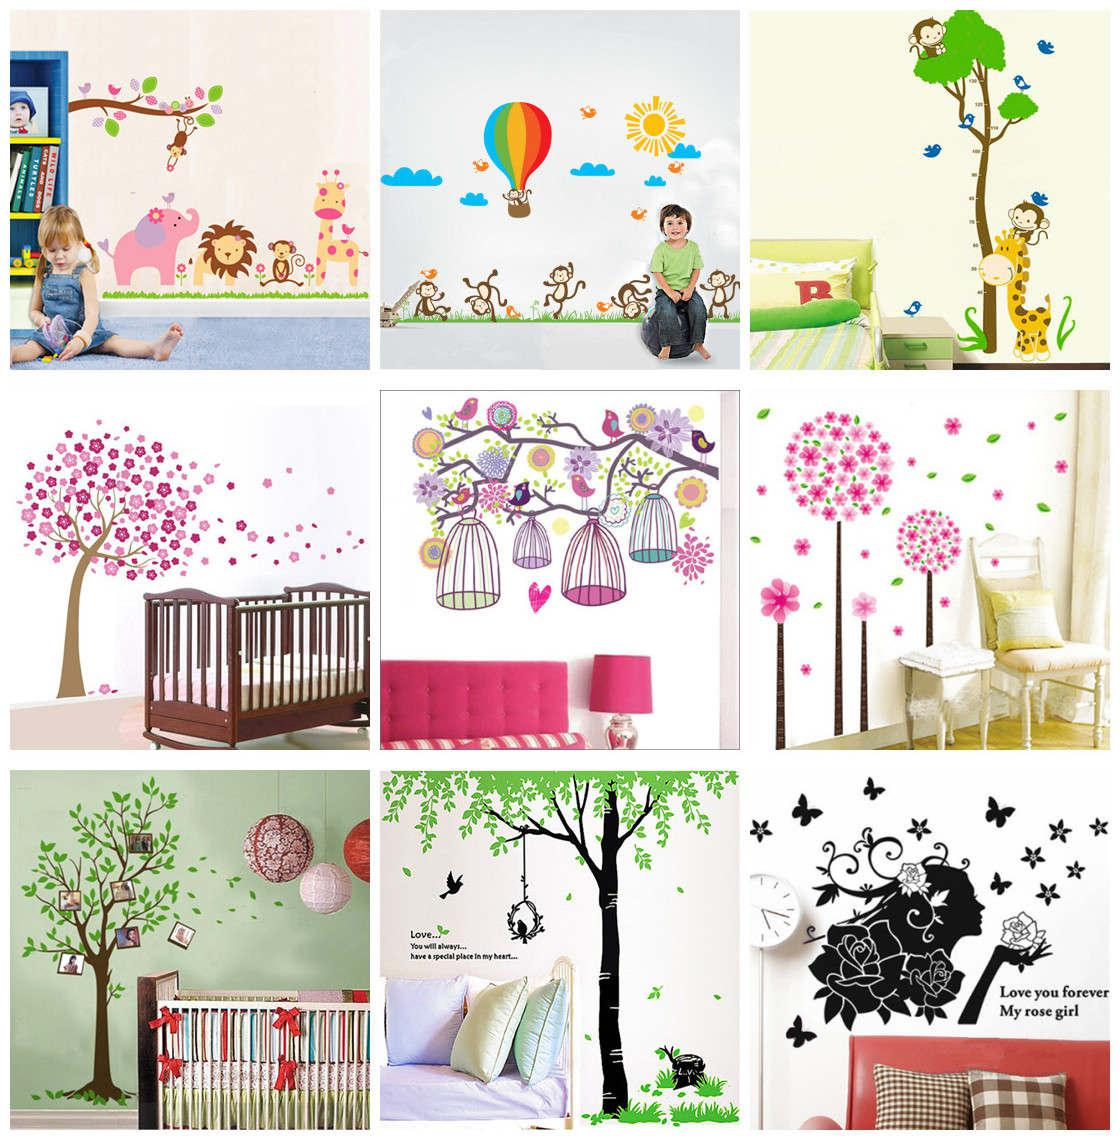 60x90cm removable wall stickers decals kids nursery wall decor mix order 60x90cm removable wall stickers decals kids nursery wall decor mural art home decoration